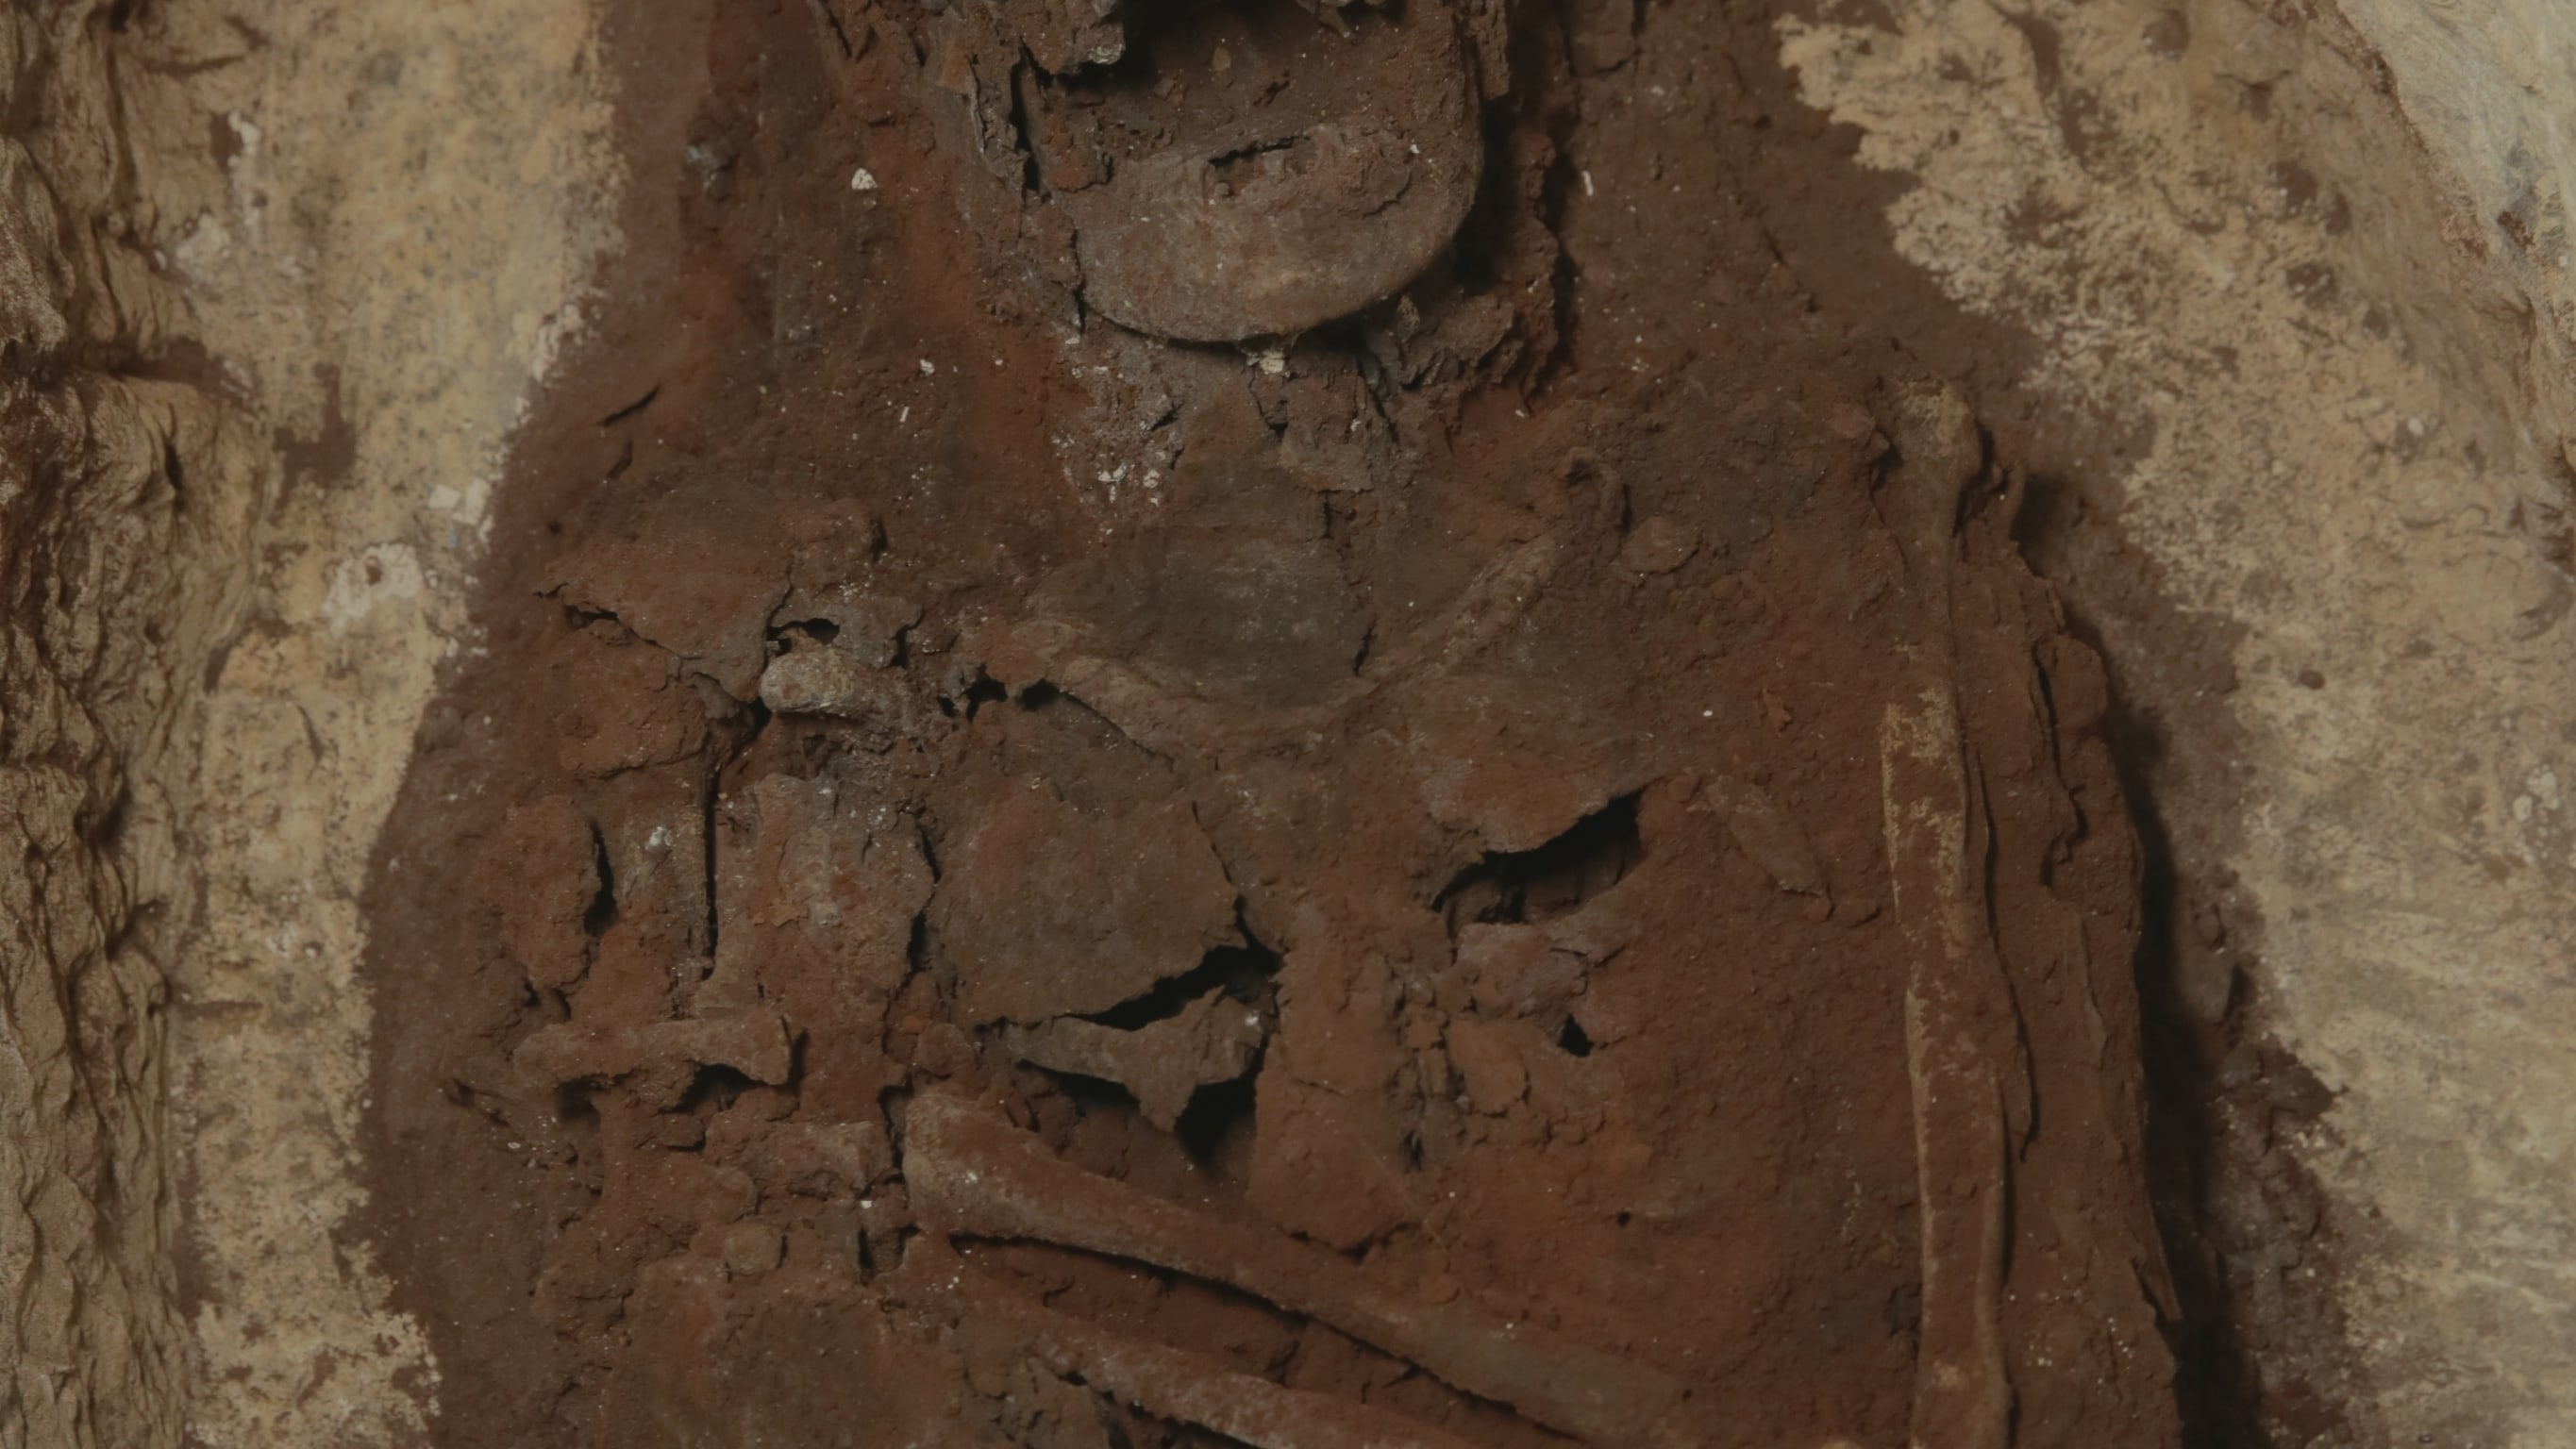 Episode 102 'The Lone Sarcophagus'